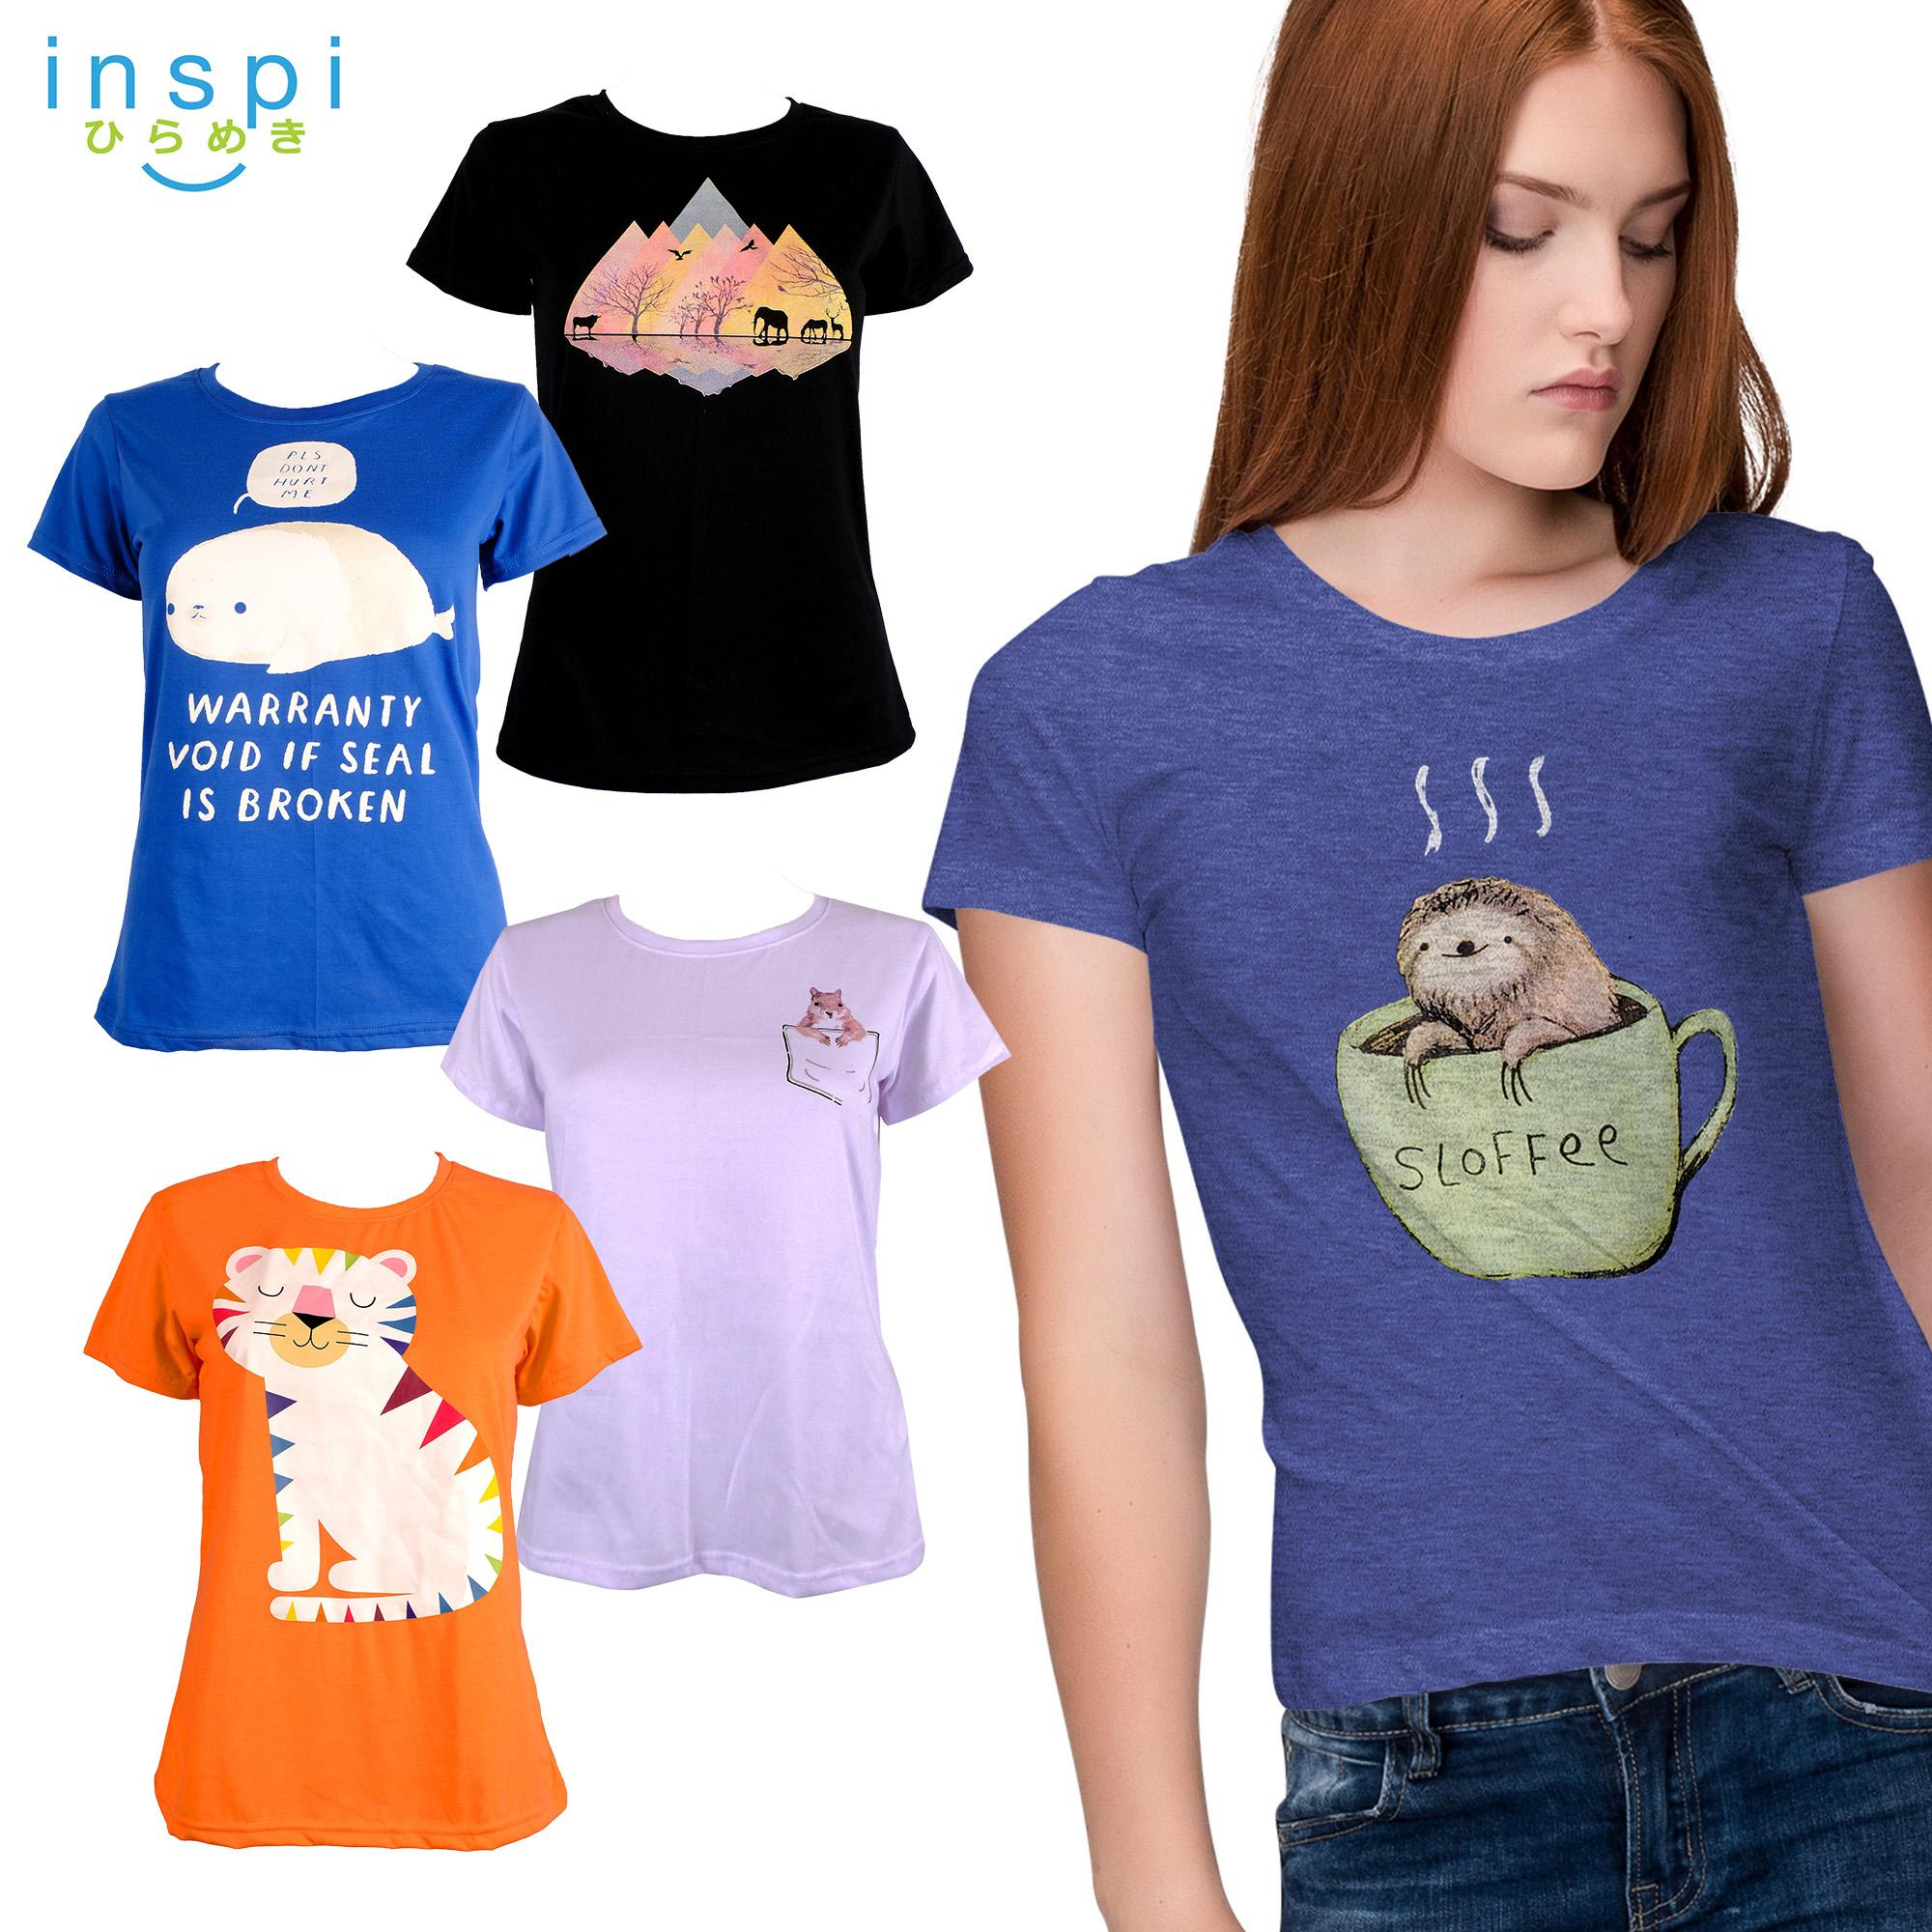 ccbe09d241 INSPI Tees Ladies Pet Collection tshirt printed graphic tee Ladies t shirt shirts  women tshirts for